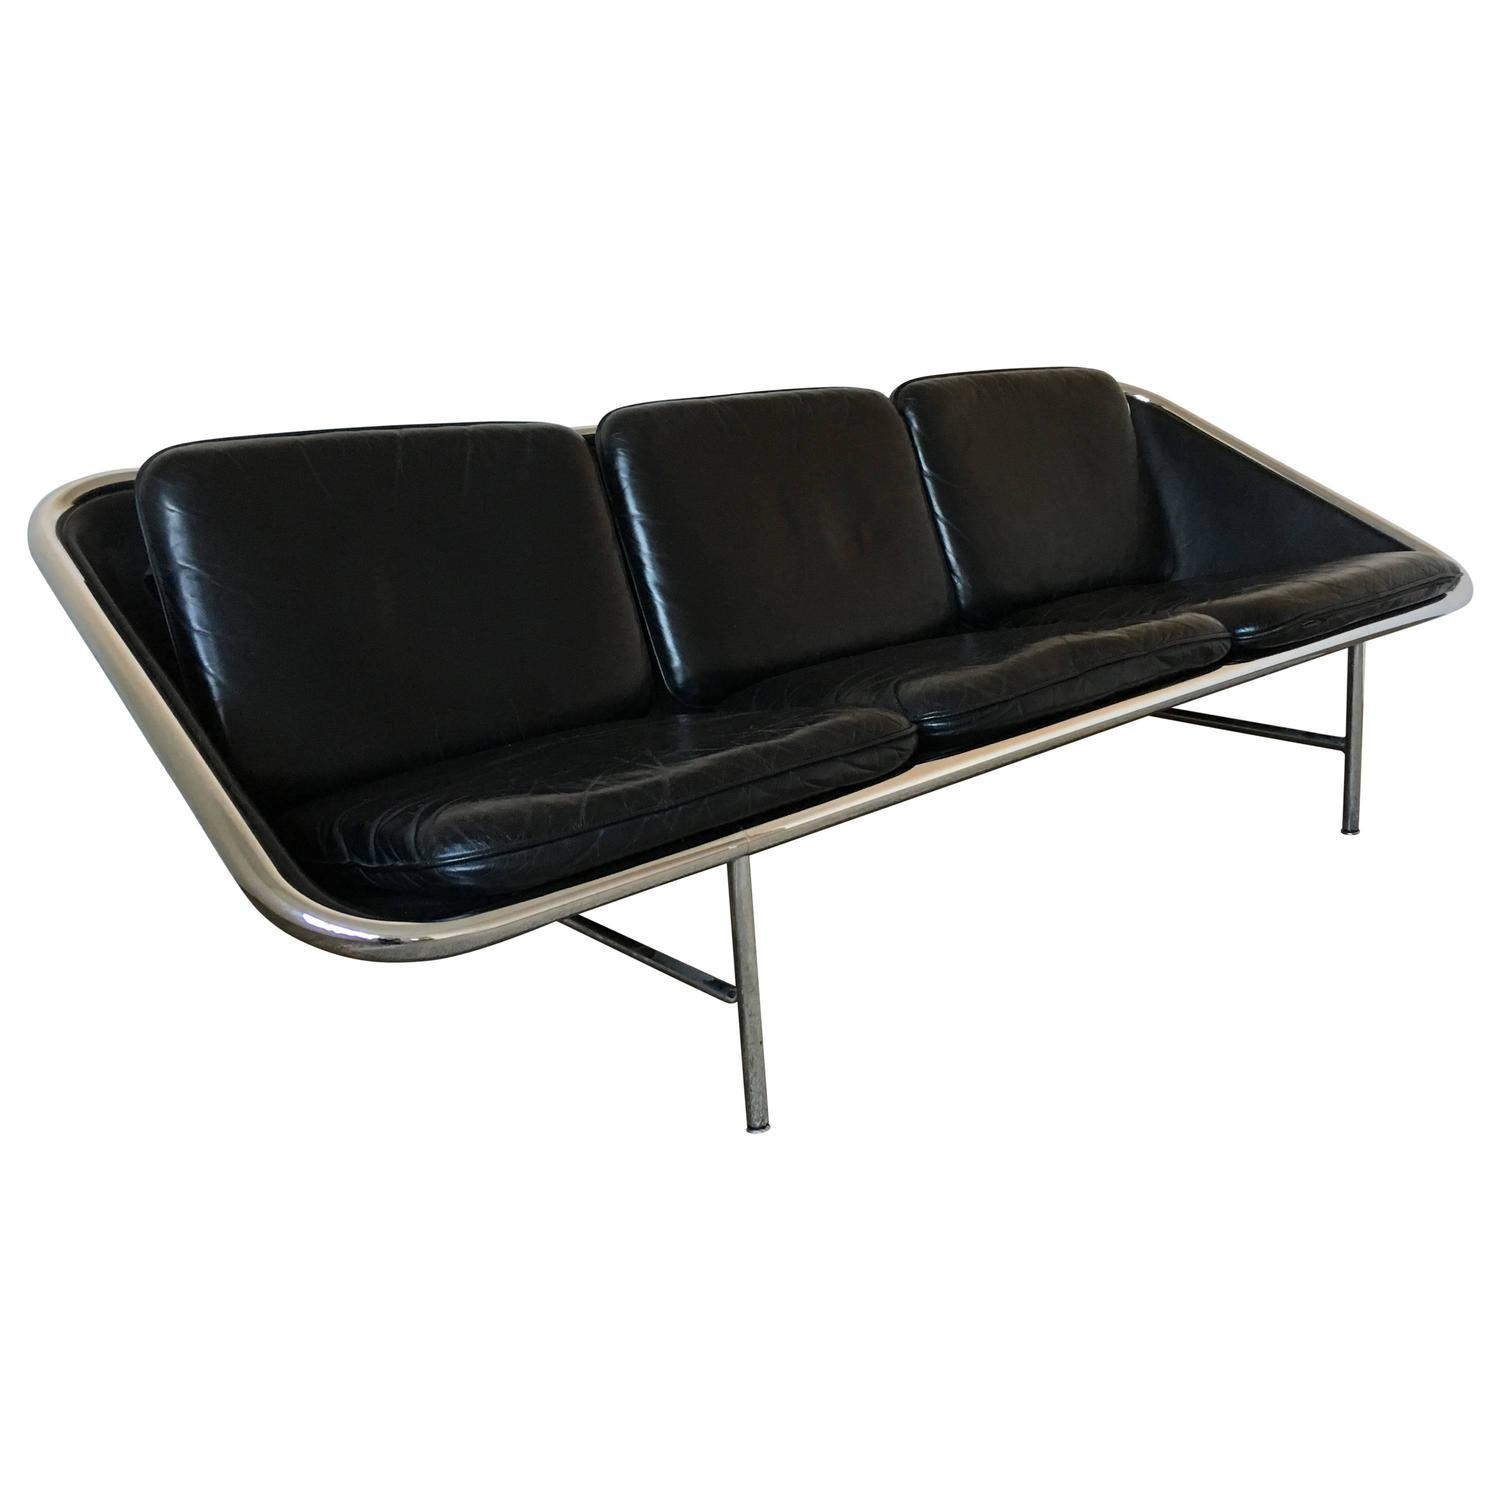 George Nelson Black Leather Sling Sofa, Herman Miller, Circa 1960 pertaining to George Nelson Sofas